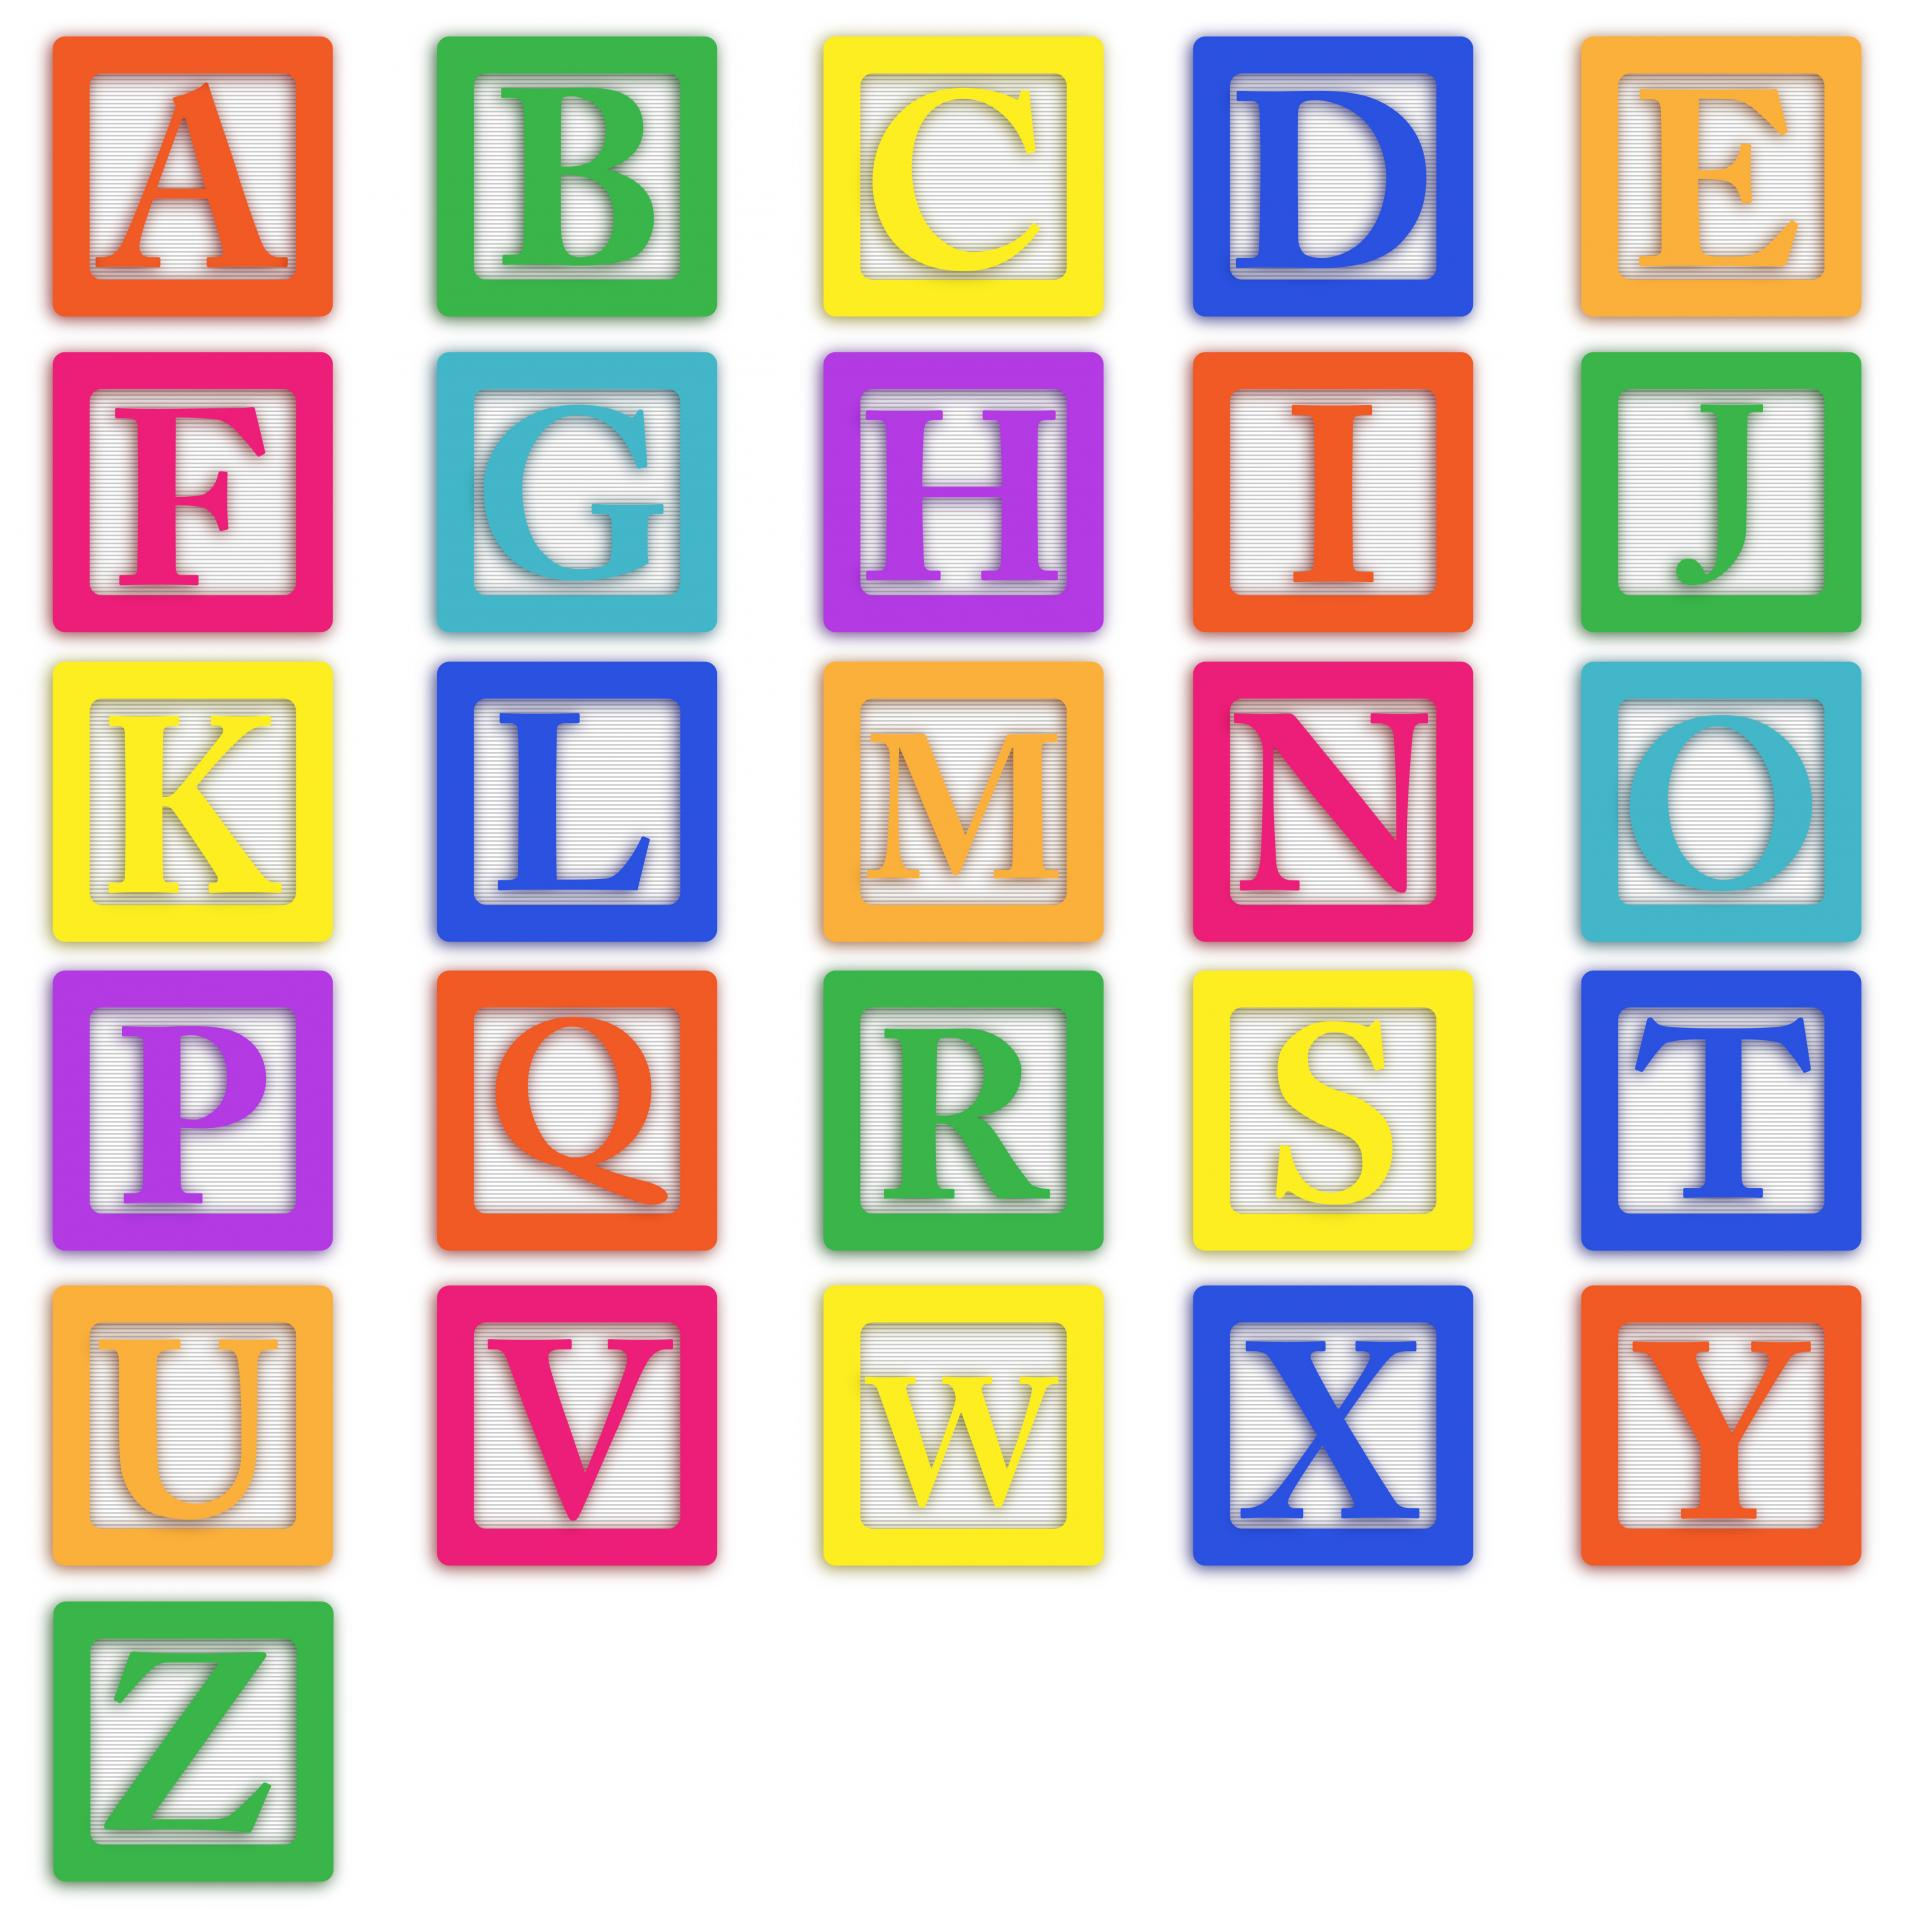 Baby Blocks Letters Free Stock Photo.